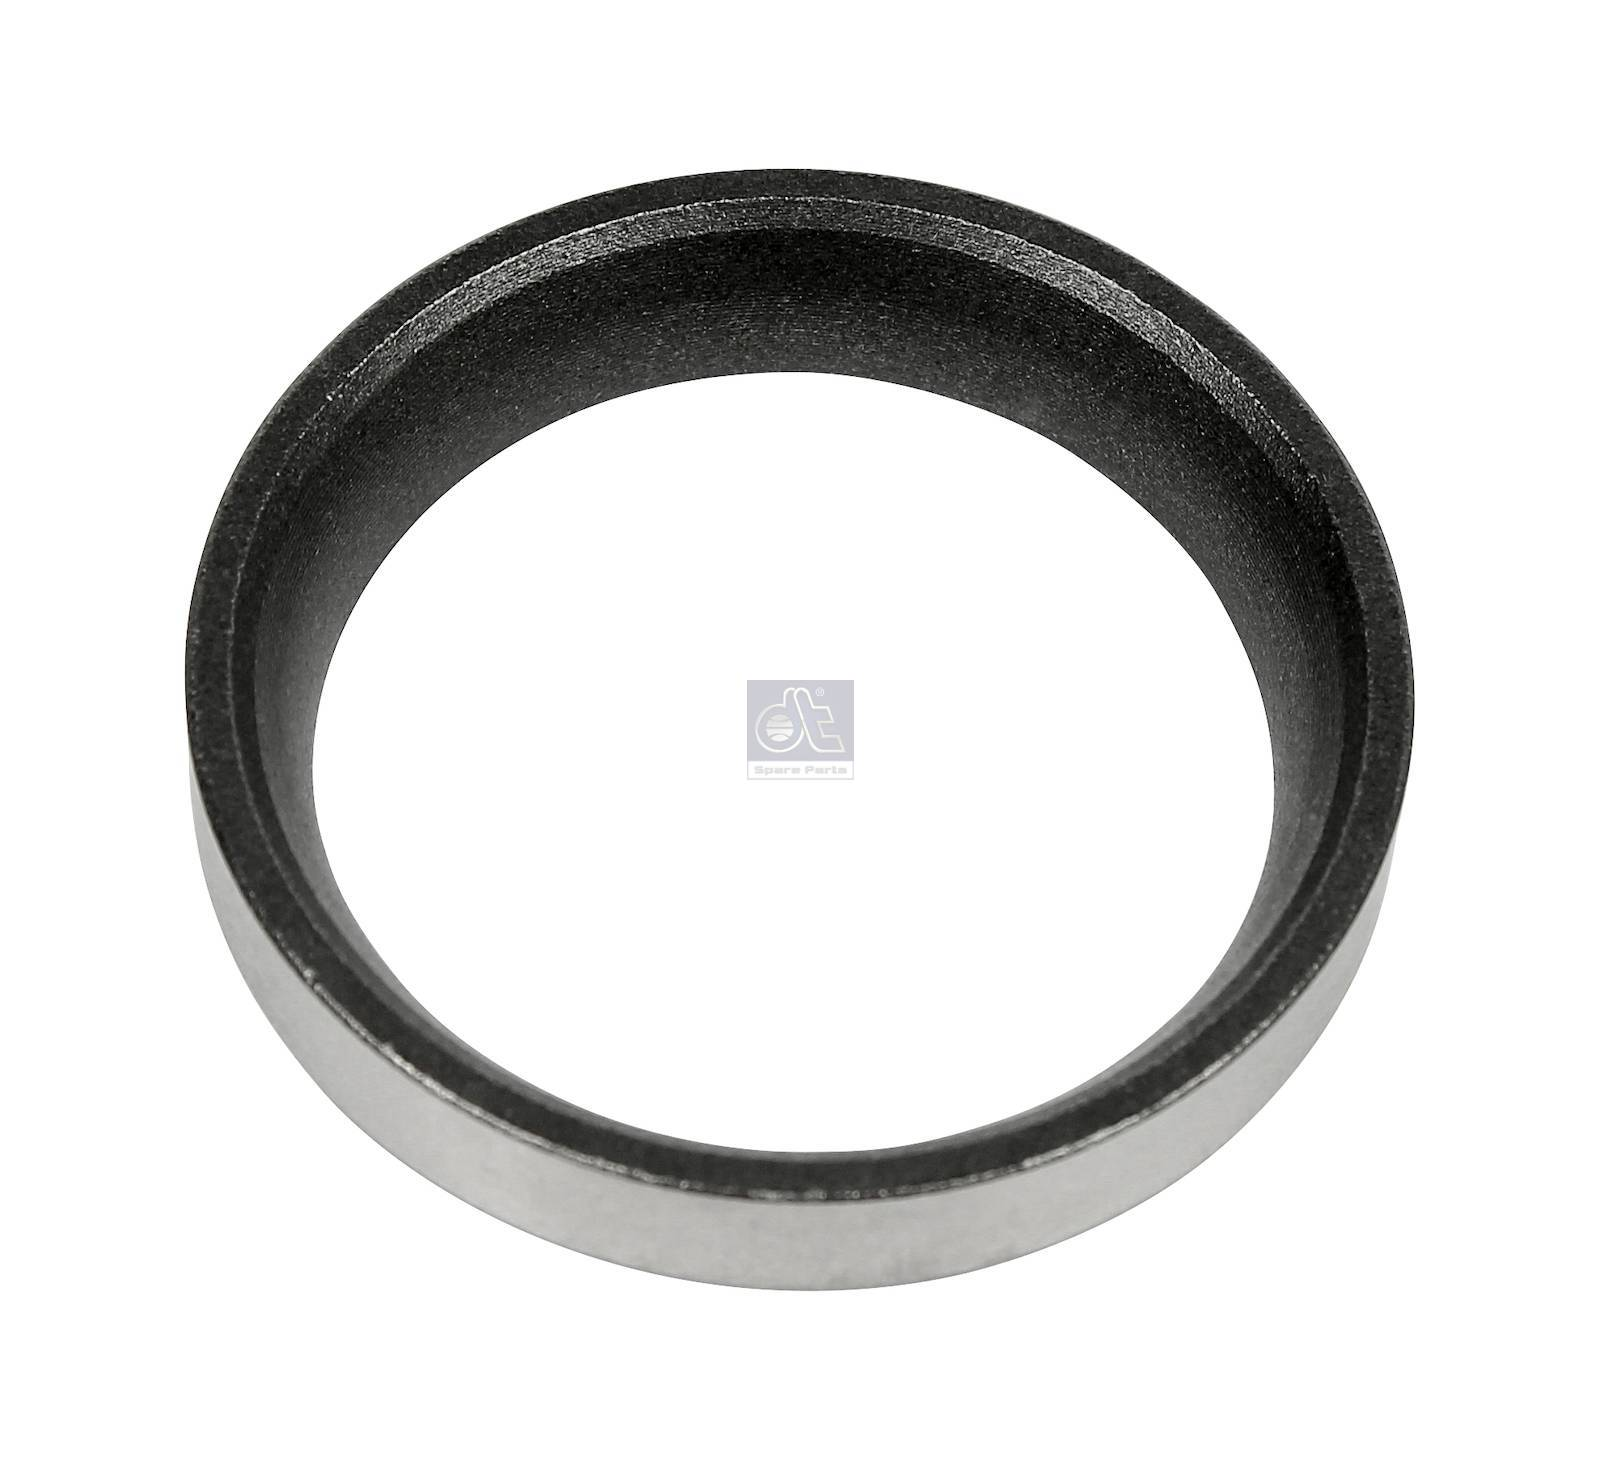 Valve seat ring, exhaust